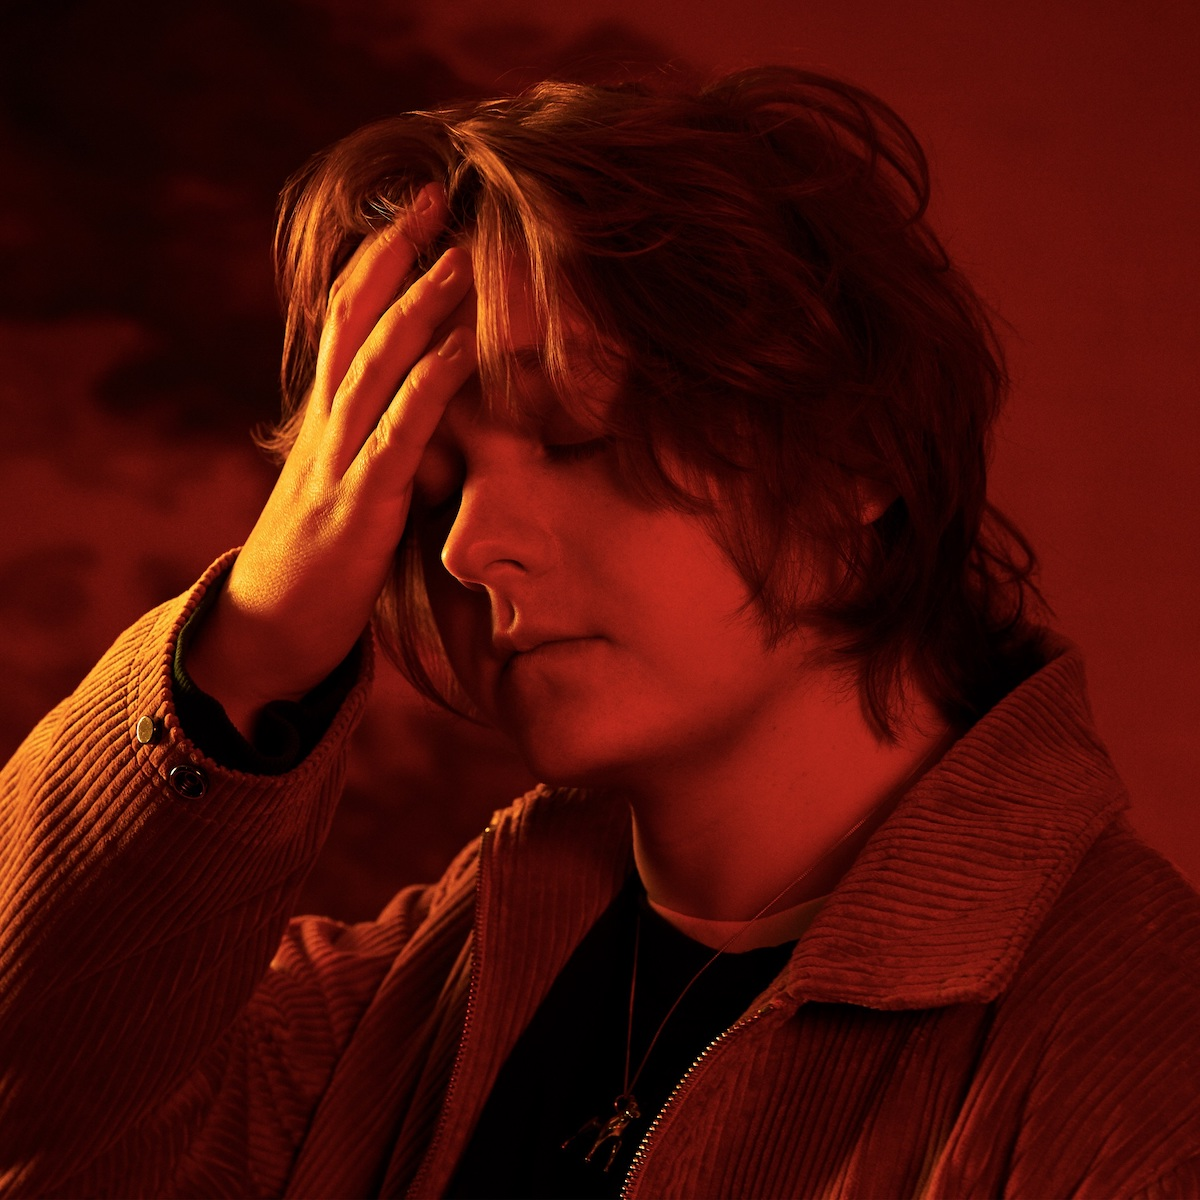 Lewis Capaldi-Divinely Uninspired To A Hellish Extent-Extended Edition